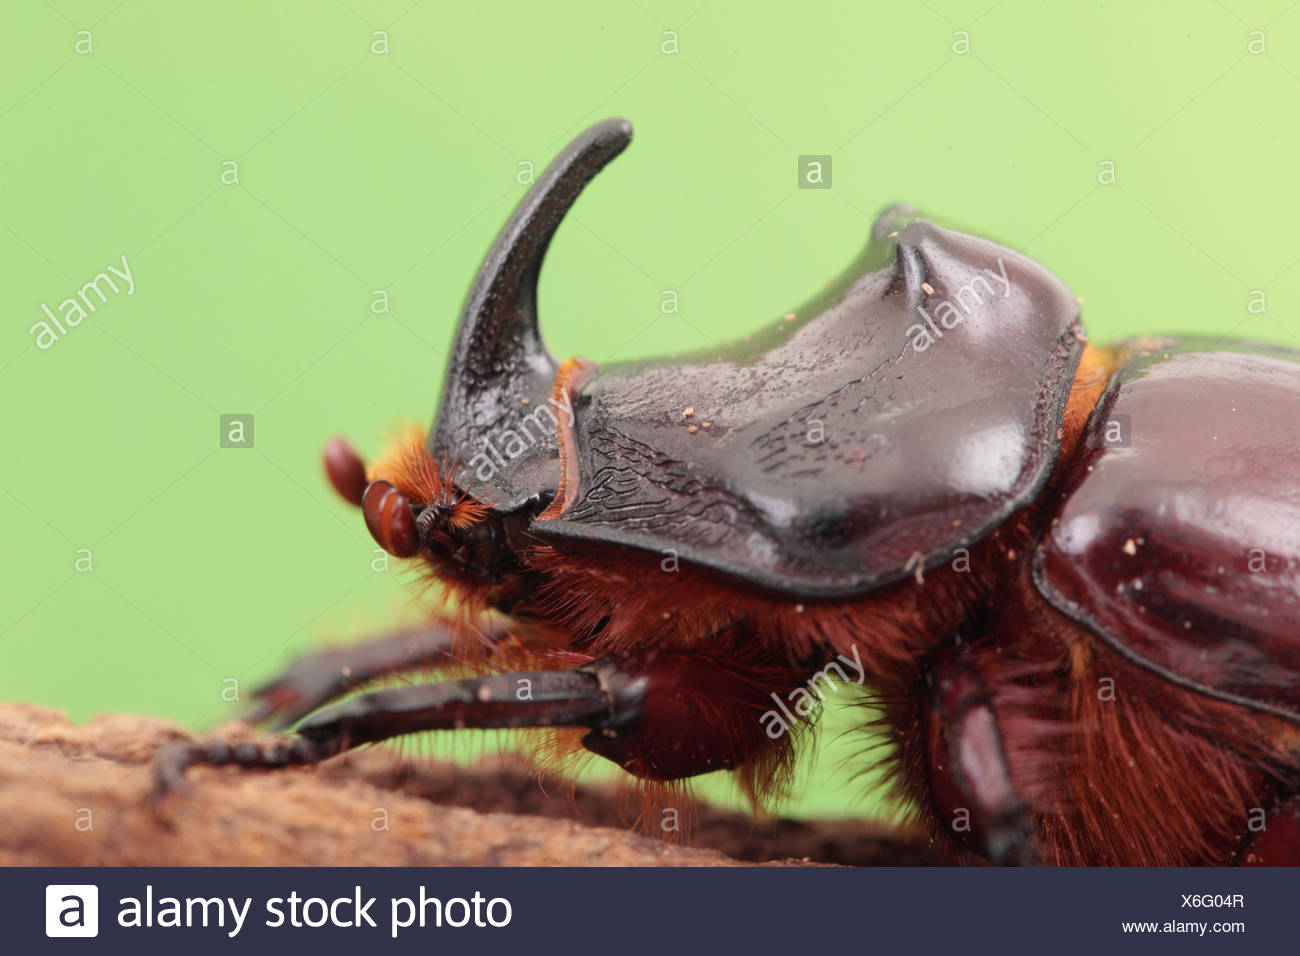 Close up portrait of an European rhinoceros beetle, Oryctes nasicornis, a large flying beetle belonging to the family Dynastinae. - Stock Image